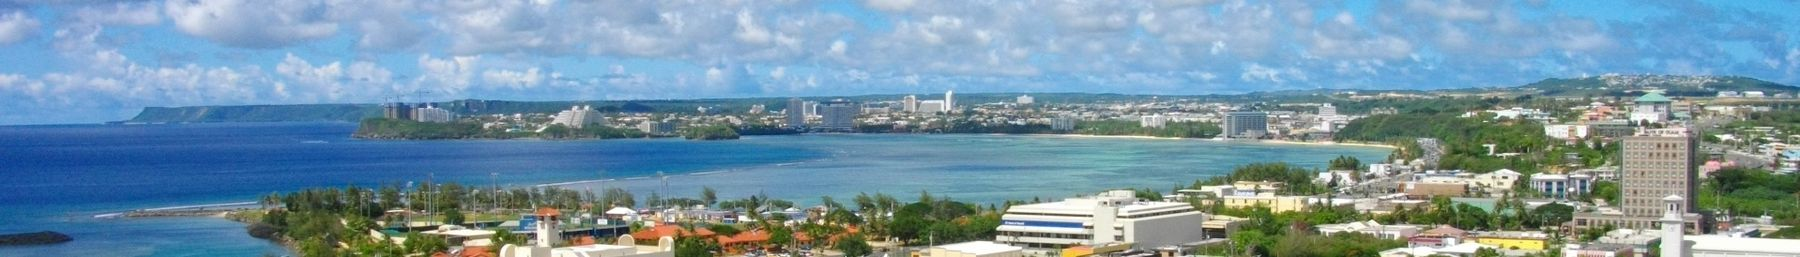 View of the City of Hagåtña